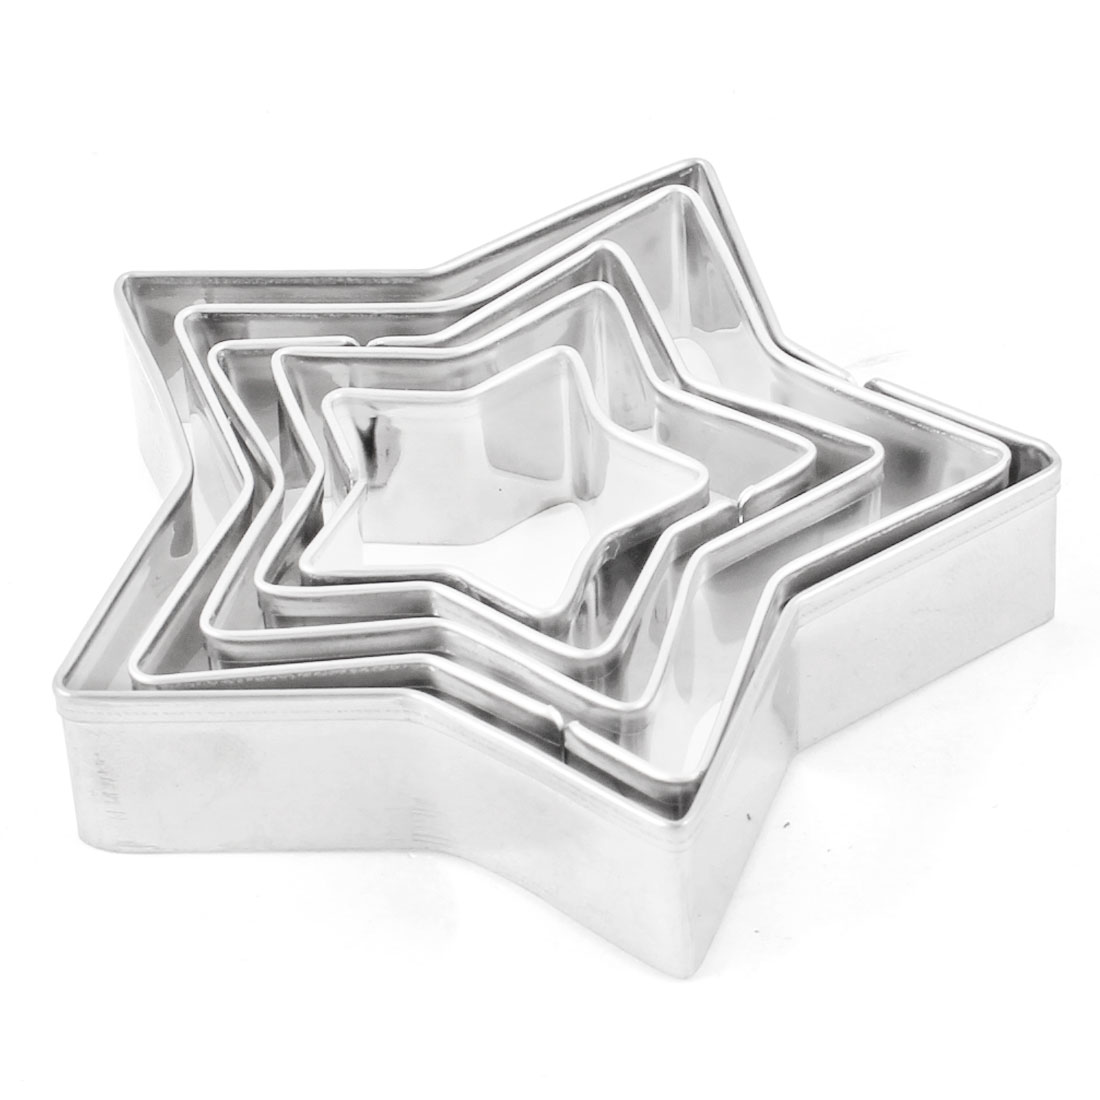 5 Pcs Stainless Steel Aluminum Alloy Star Cookie Cutter Cake Mould